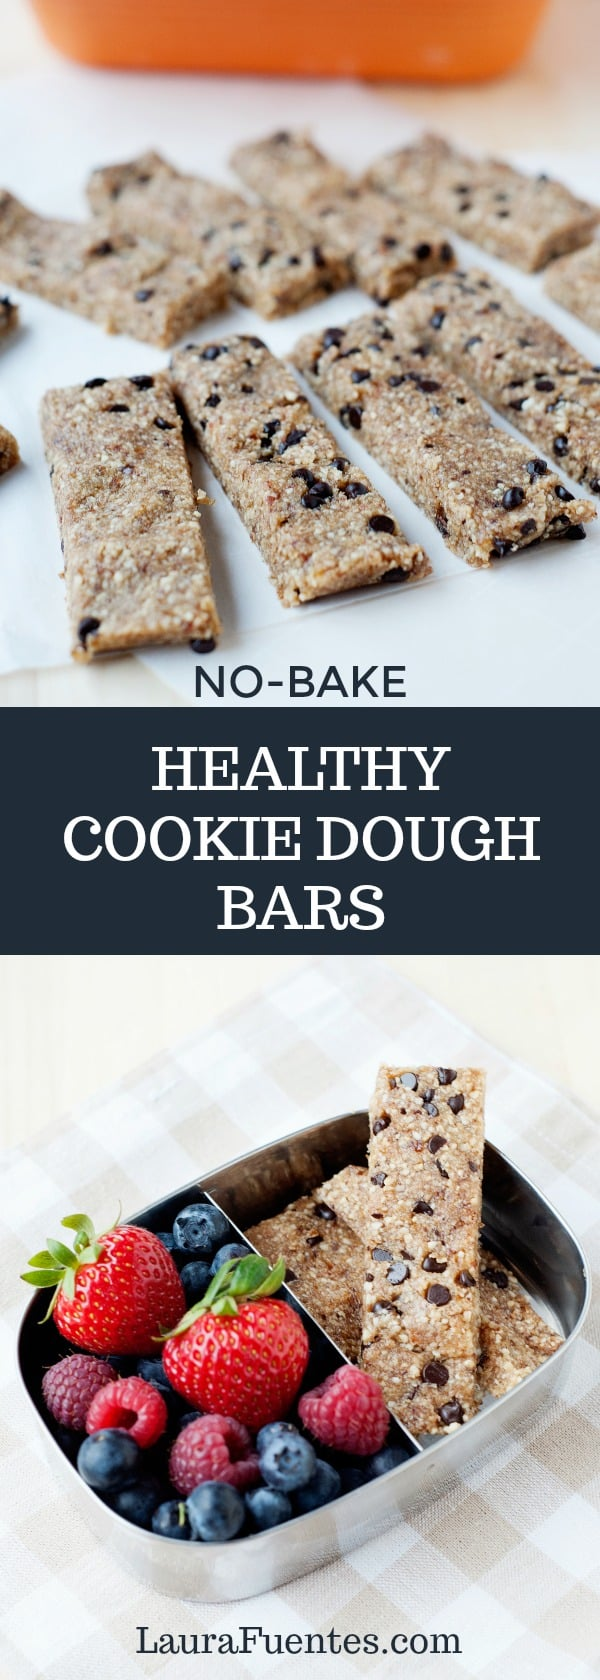 These healthy cookie dough bars are so good and simple to make, you'll wonder why you spent so much money on the store bought ones!